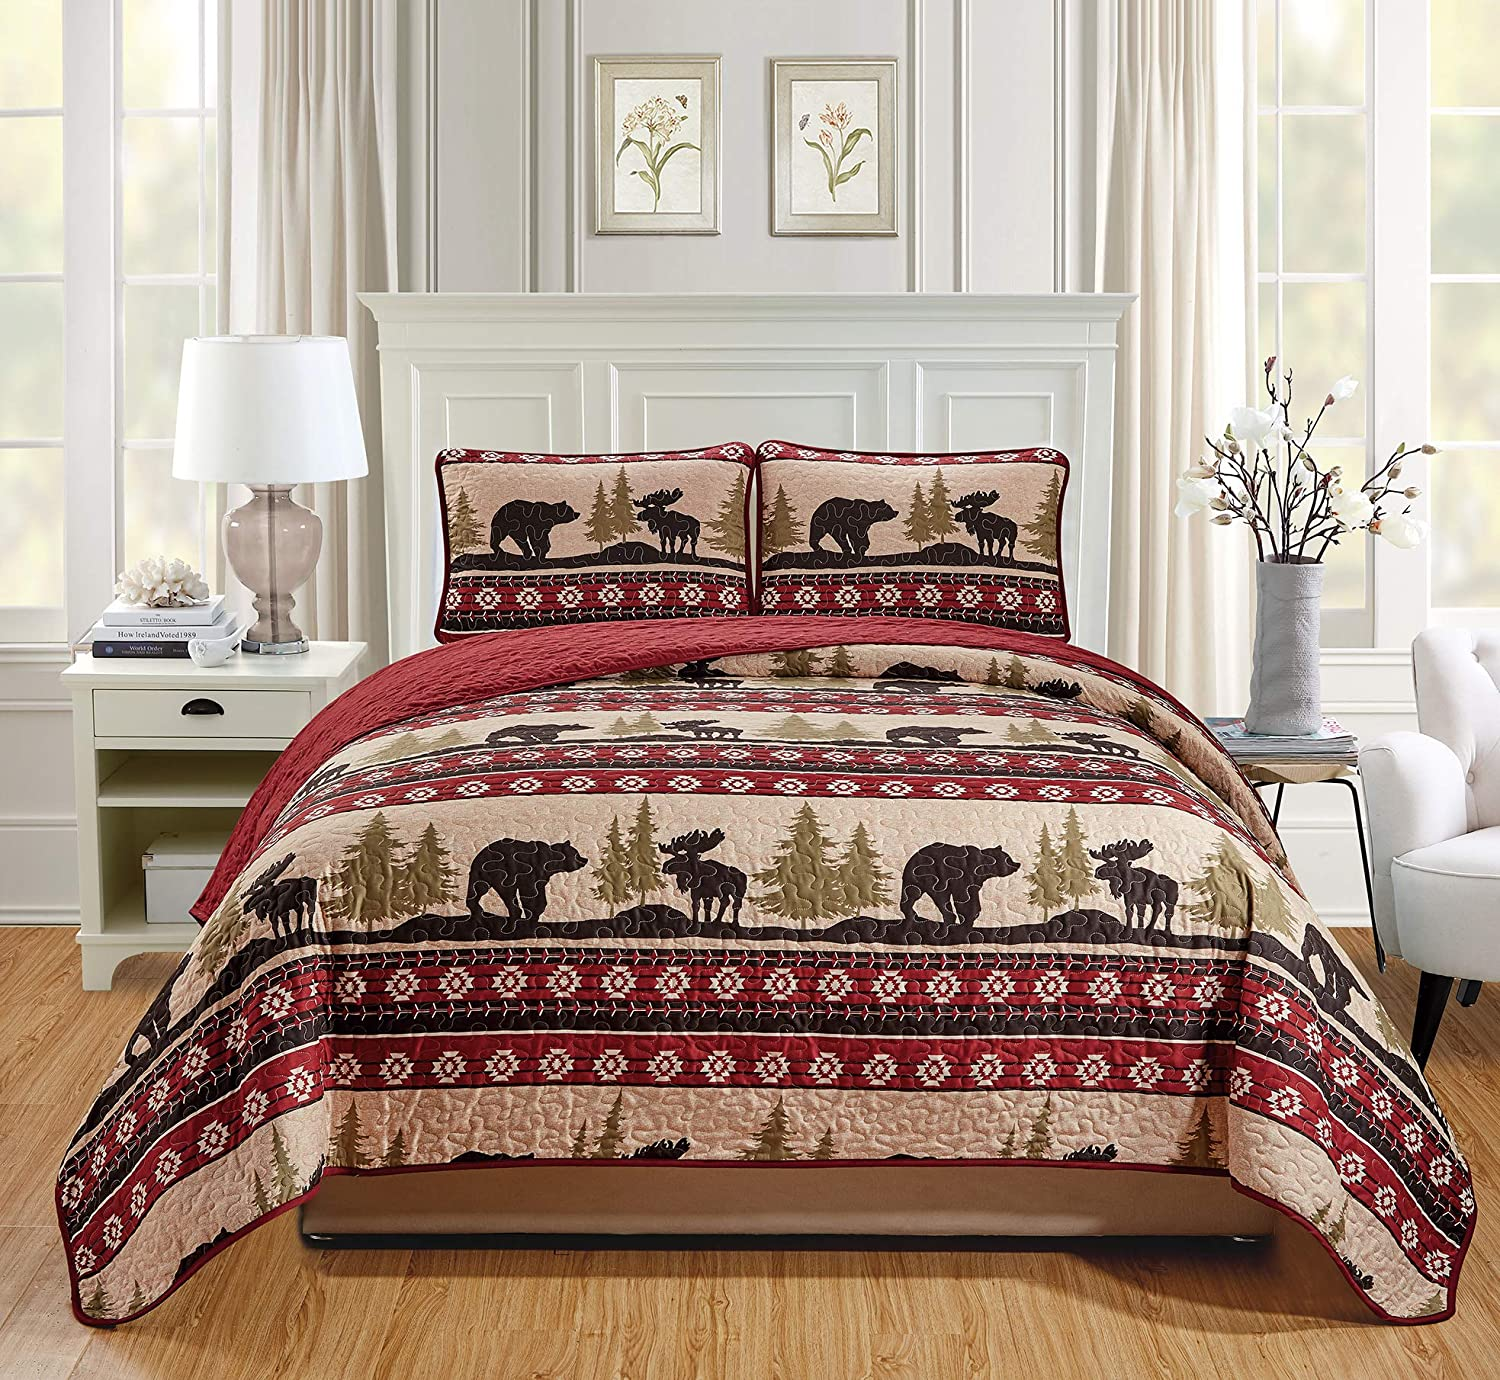 Rustic Western Southwestern Bedspread Set with Native American Designs Grizzly Bears and Moose Roaming The Great American Outdoors Pine Forest (Forest Bear - Twin)